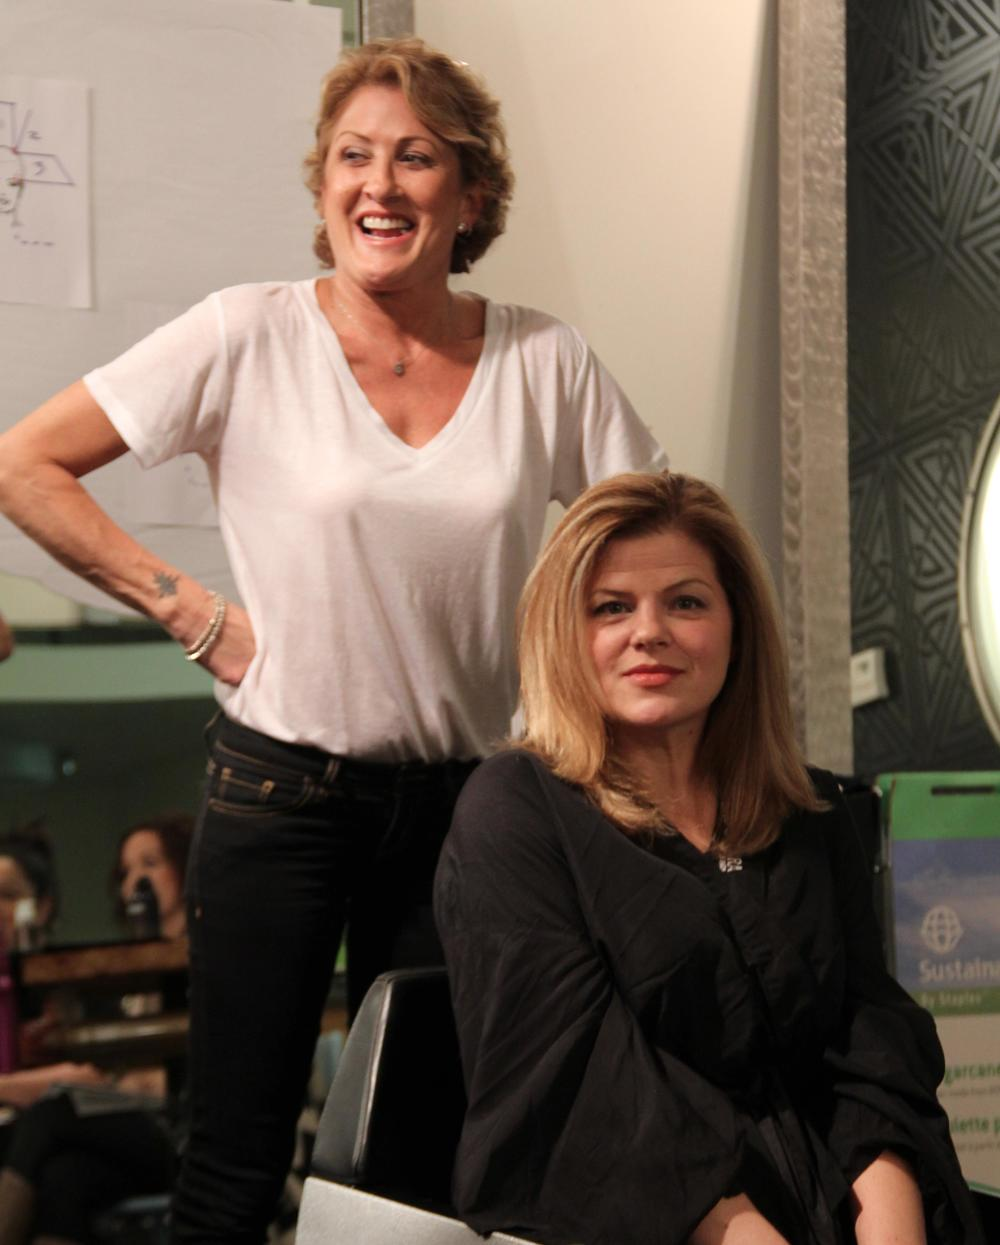 Linda Francipane of NYC teaches class for Umbrella Salon, San Jose, CA and Buzz Salon, Iowa City, IA. Model, Erin Connolly